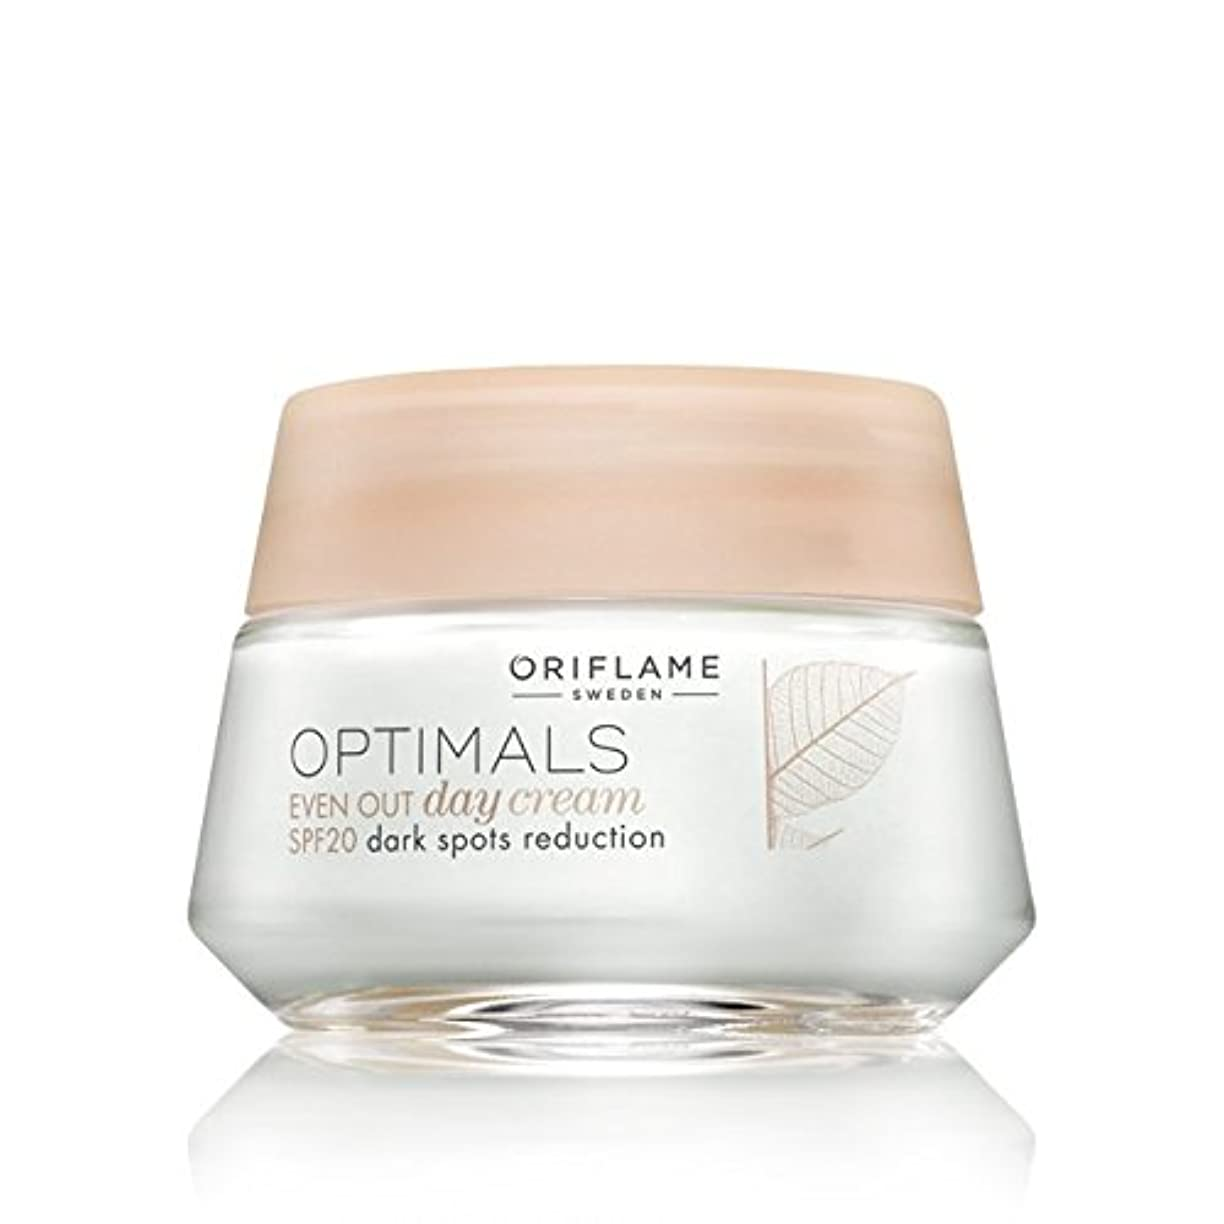 配列生まっすぐにするOriflame Optimals SPF 20 Dark Spot Reduction Even Out Day Cream, 50ml